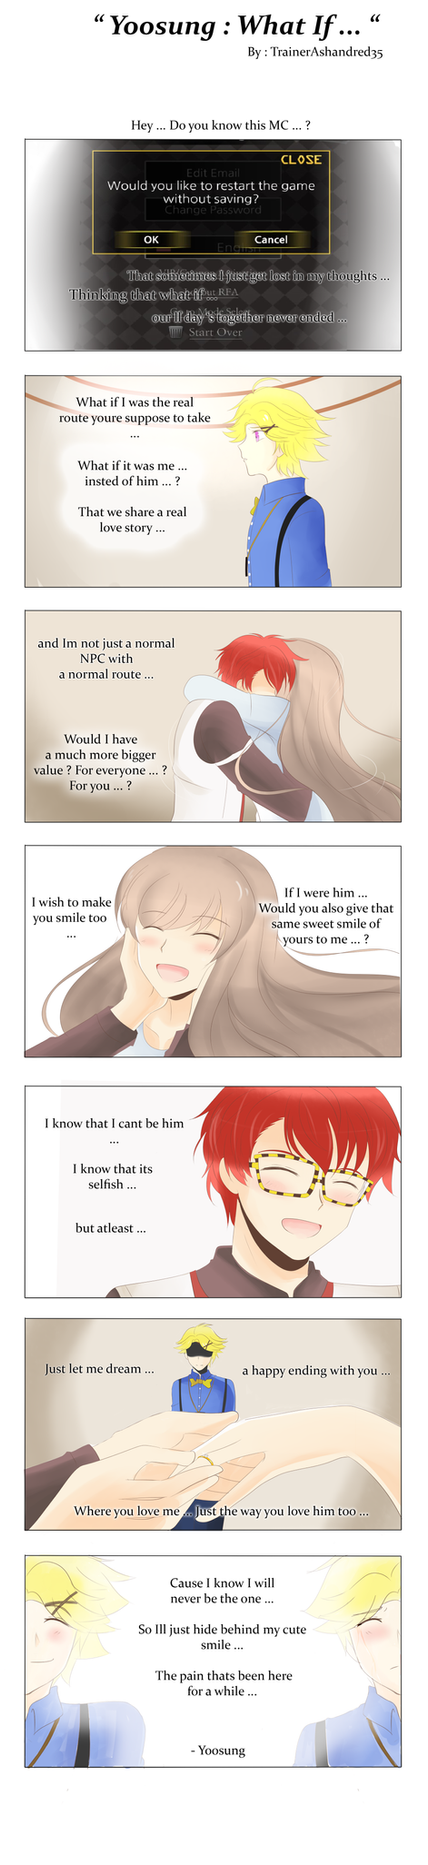 Yoosung : What If ... by TrainerAshandRed35